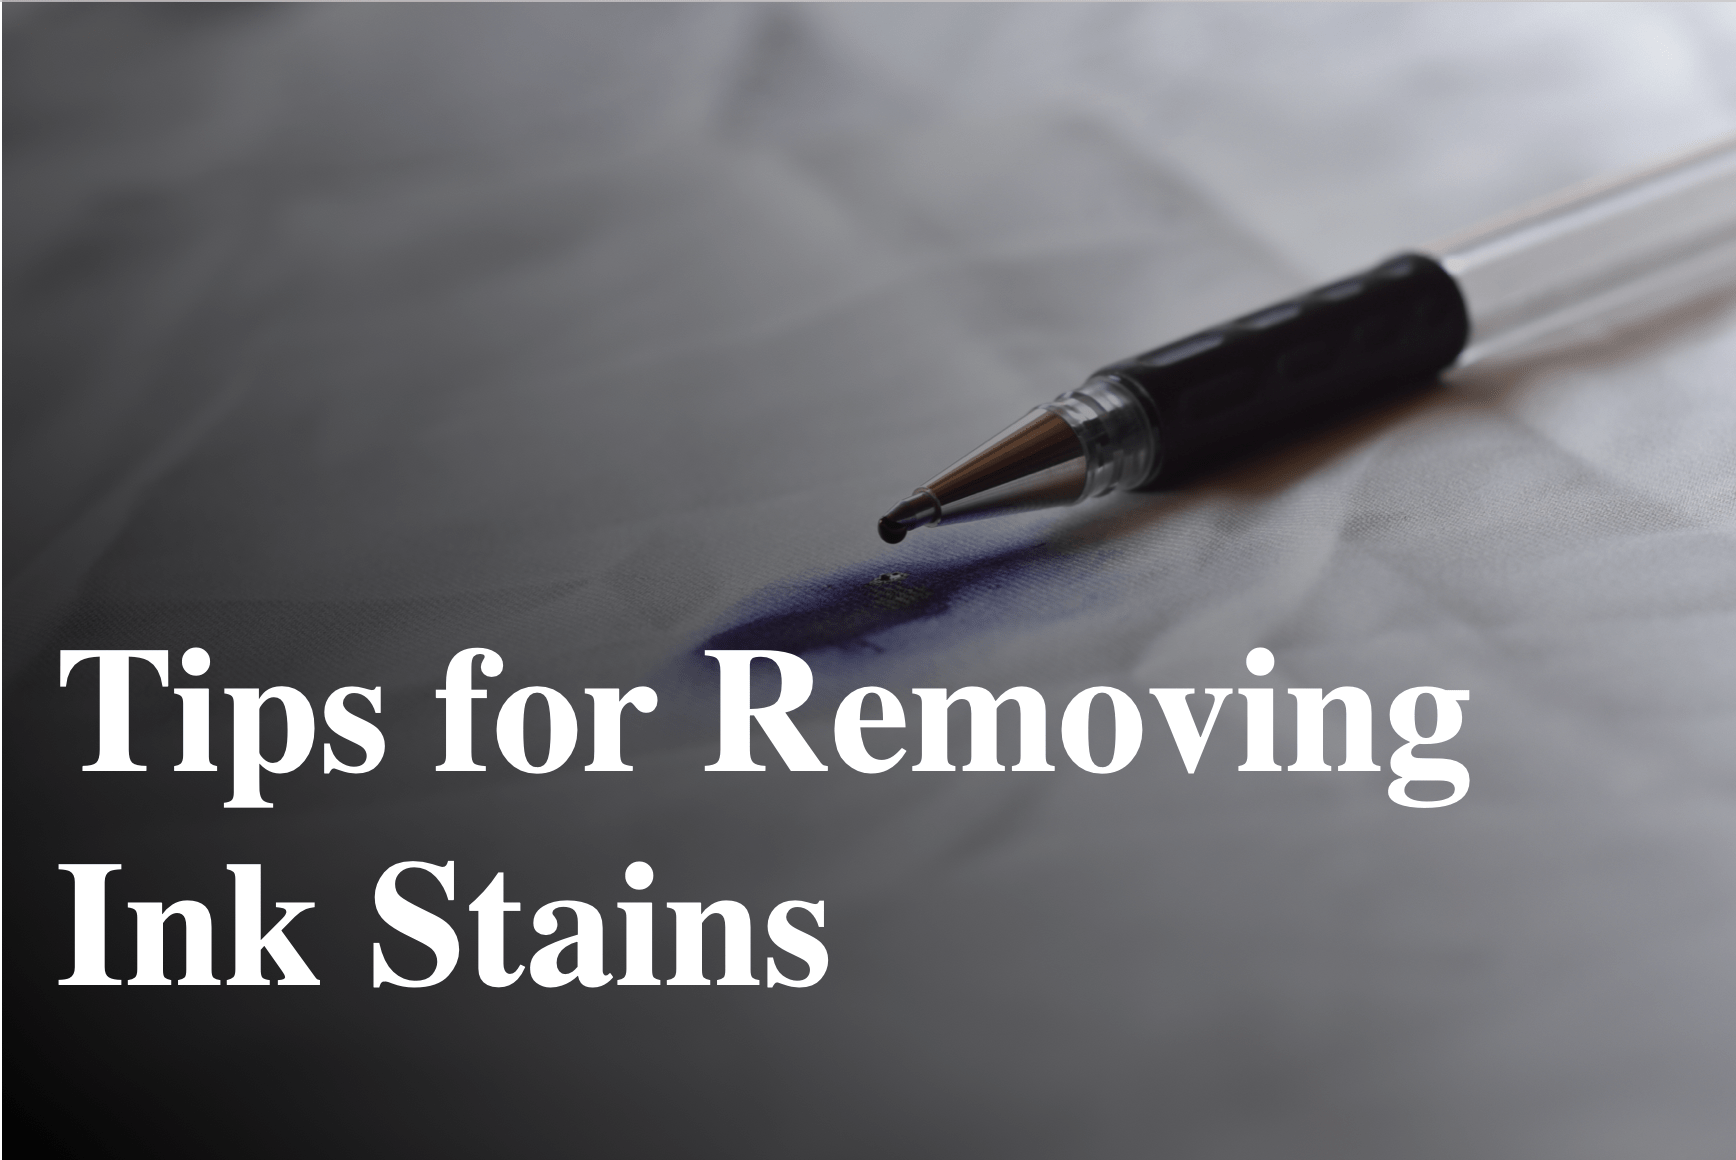 tips for removing ink stains